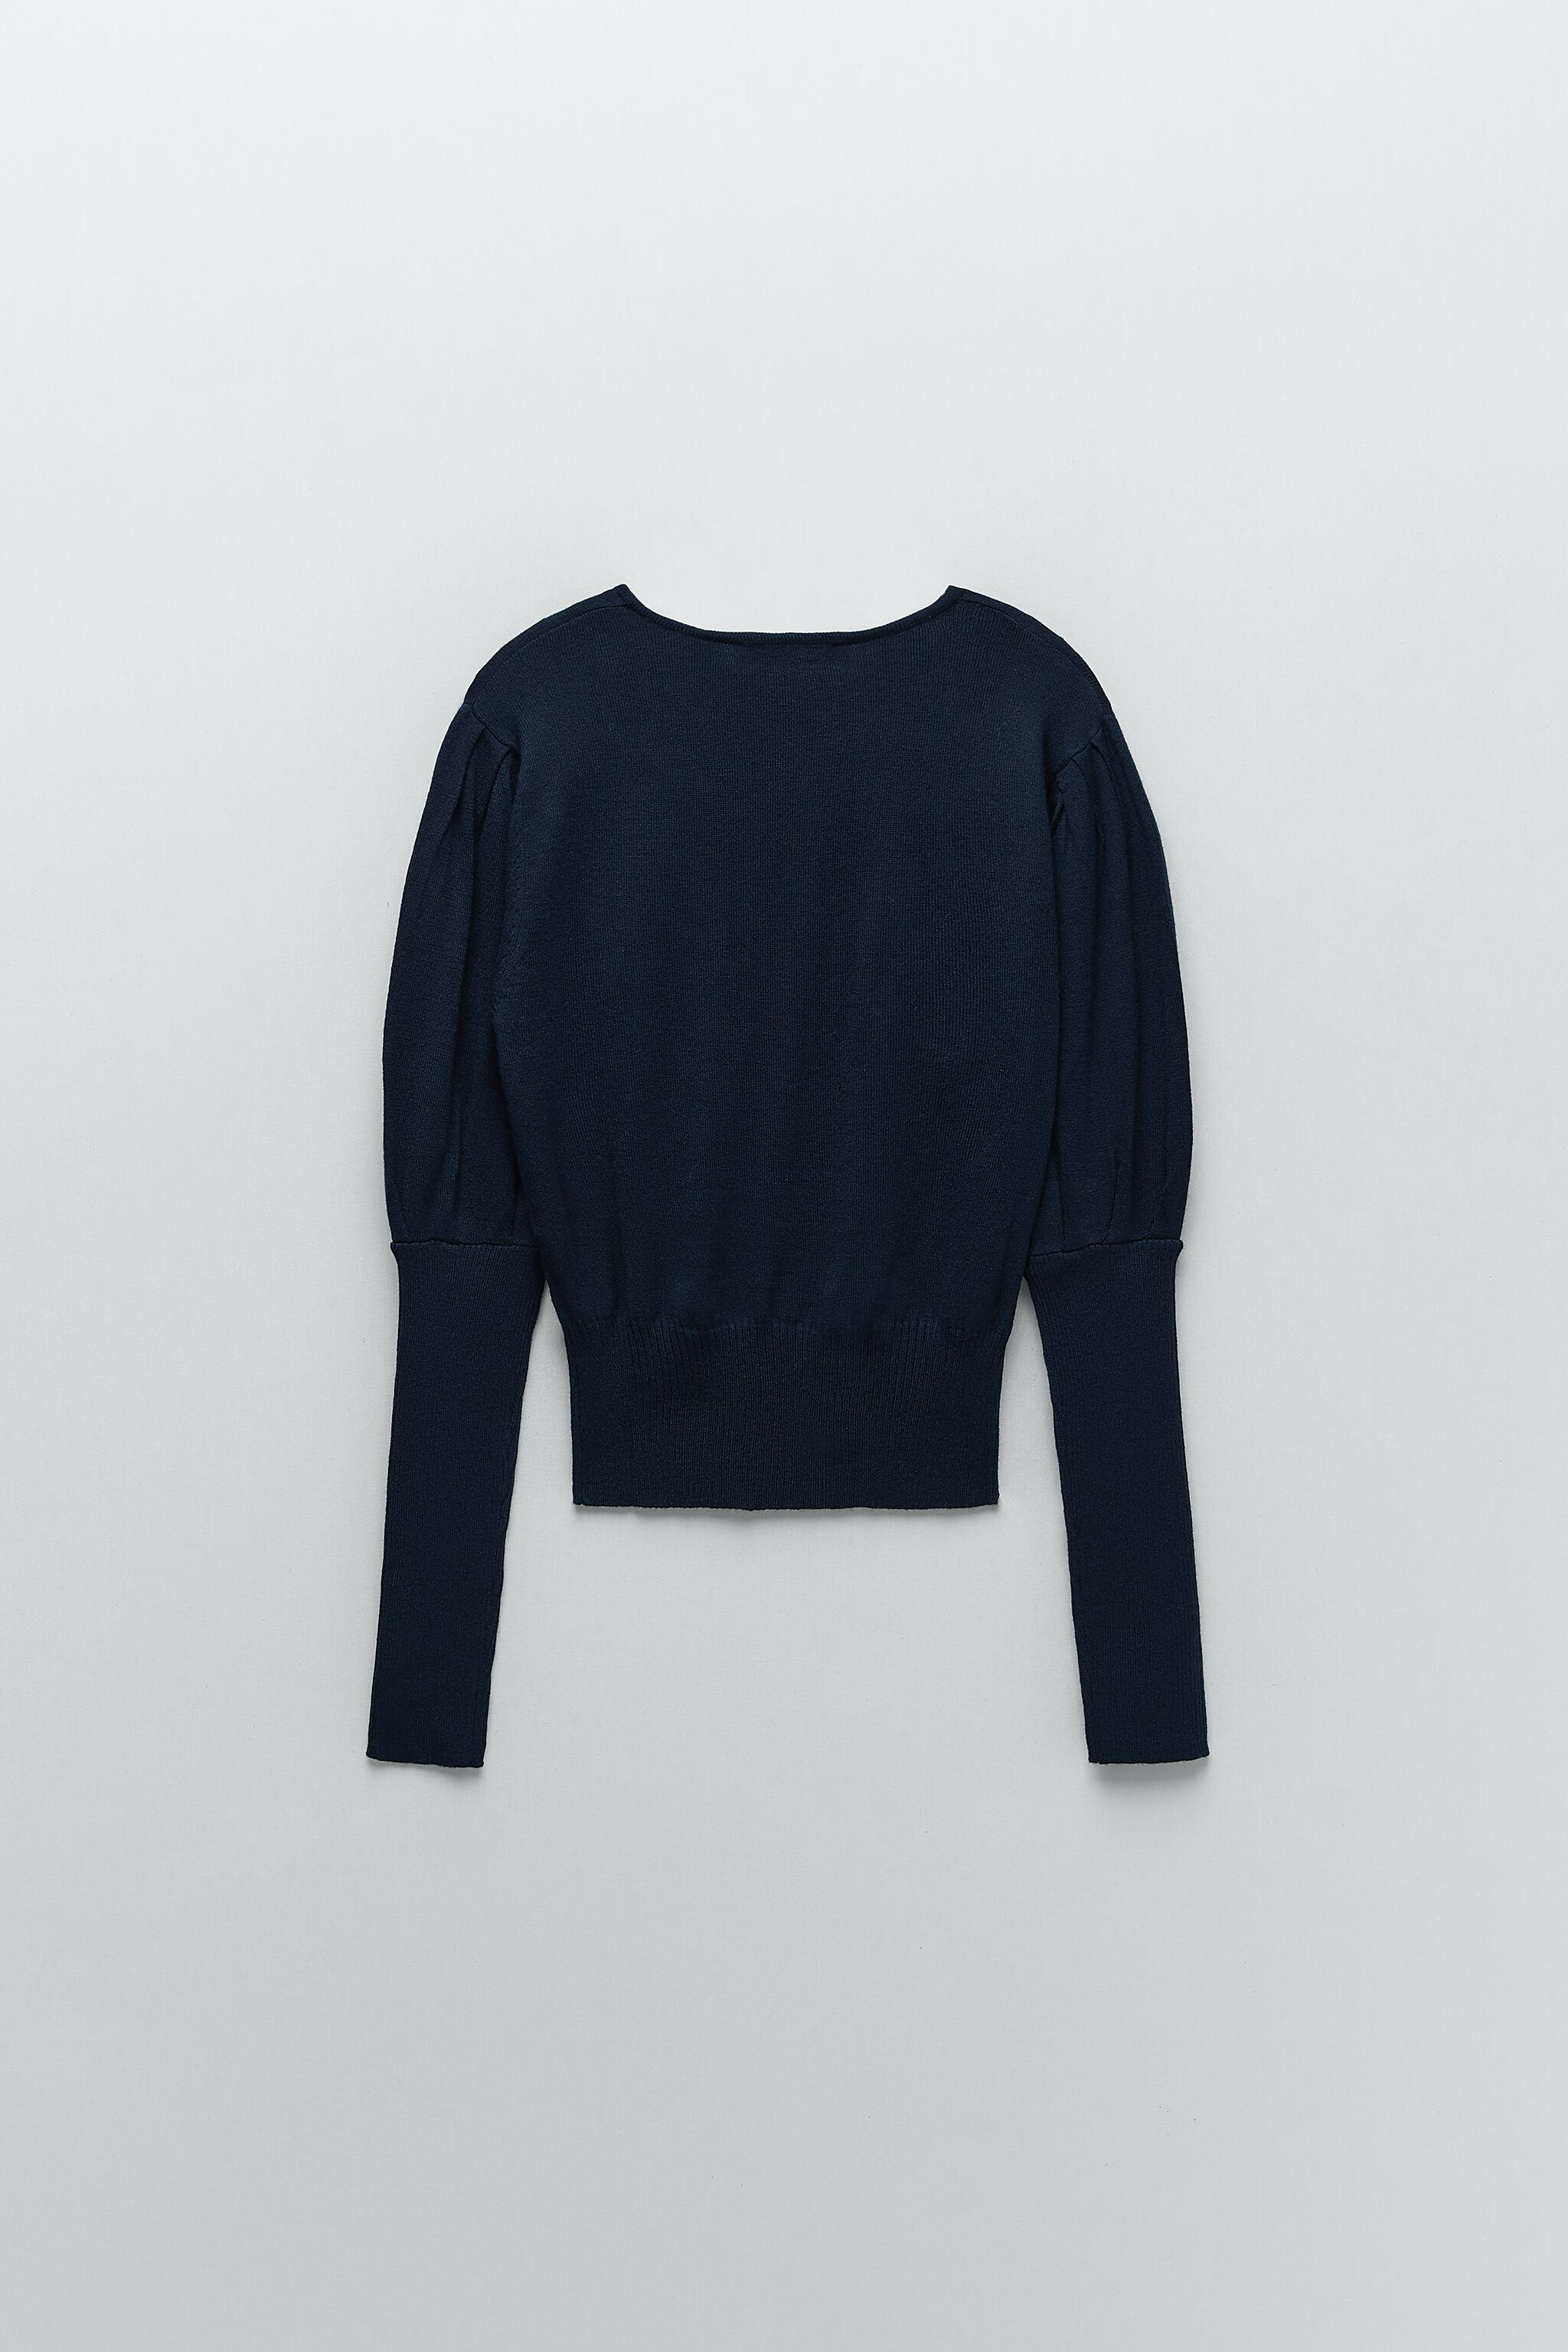 CUT OUT KNIT SWEATER 5